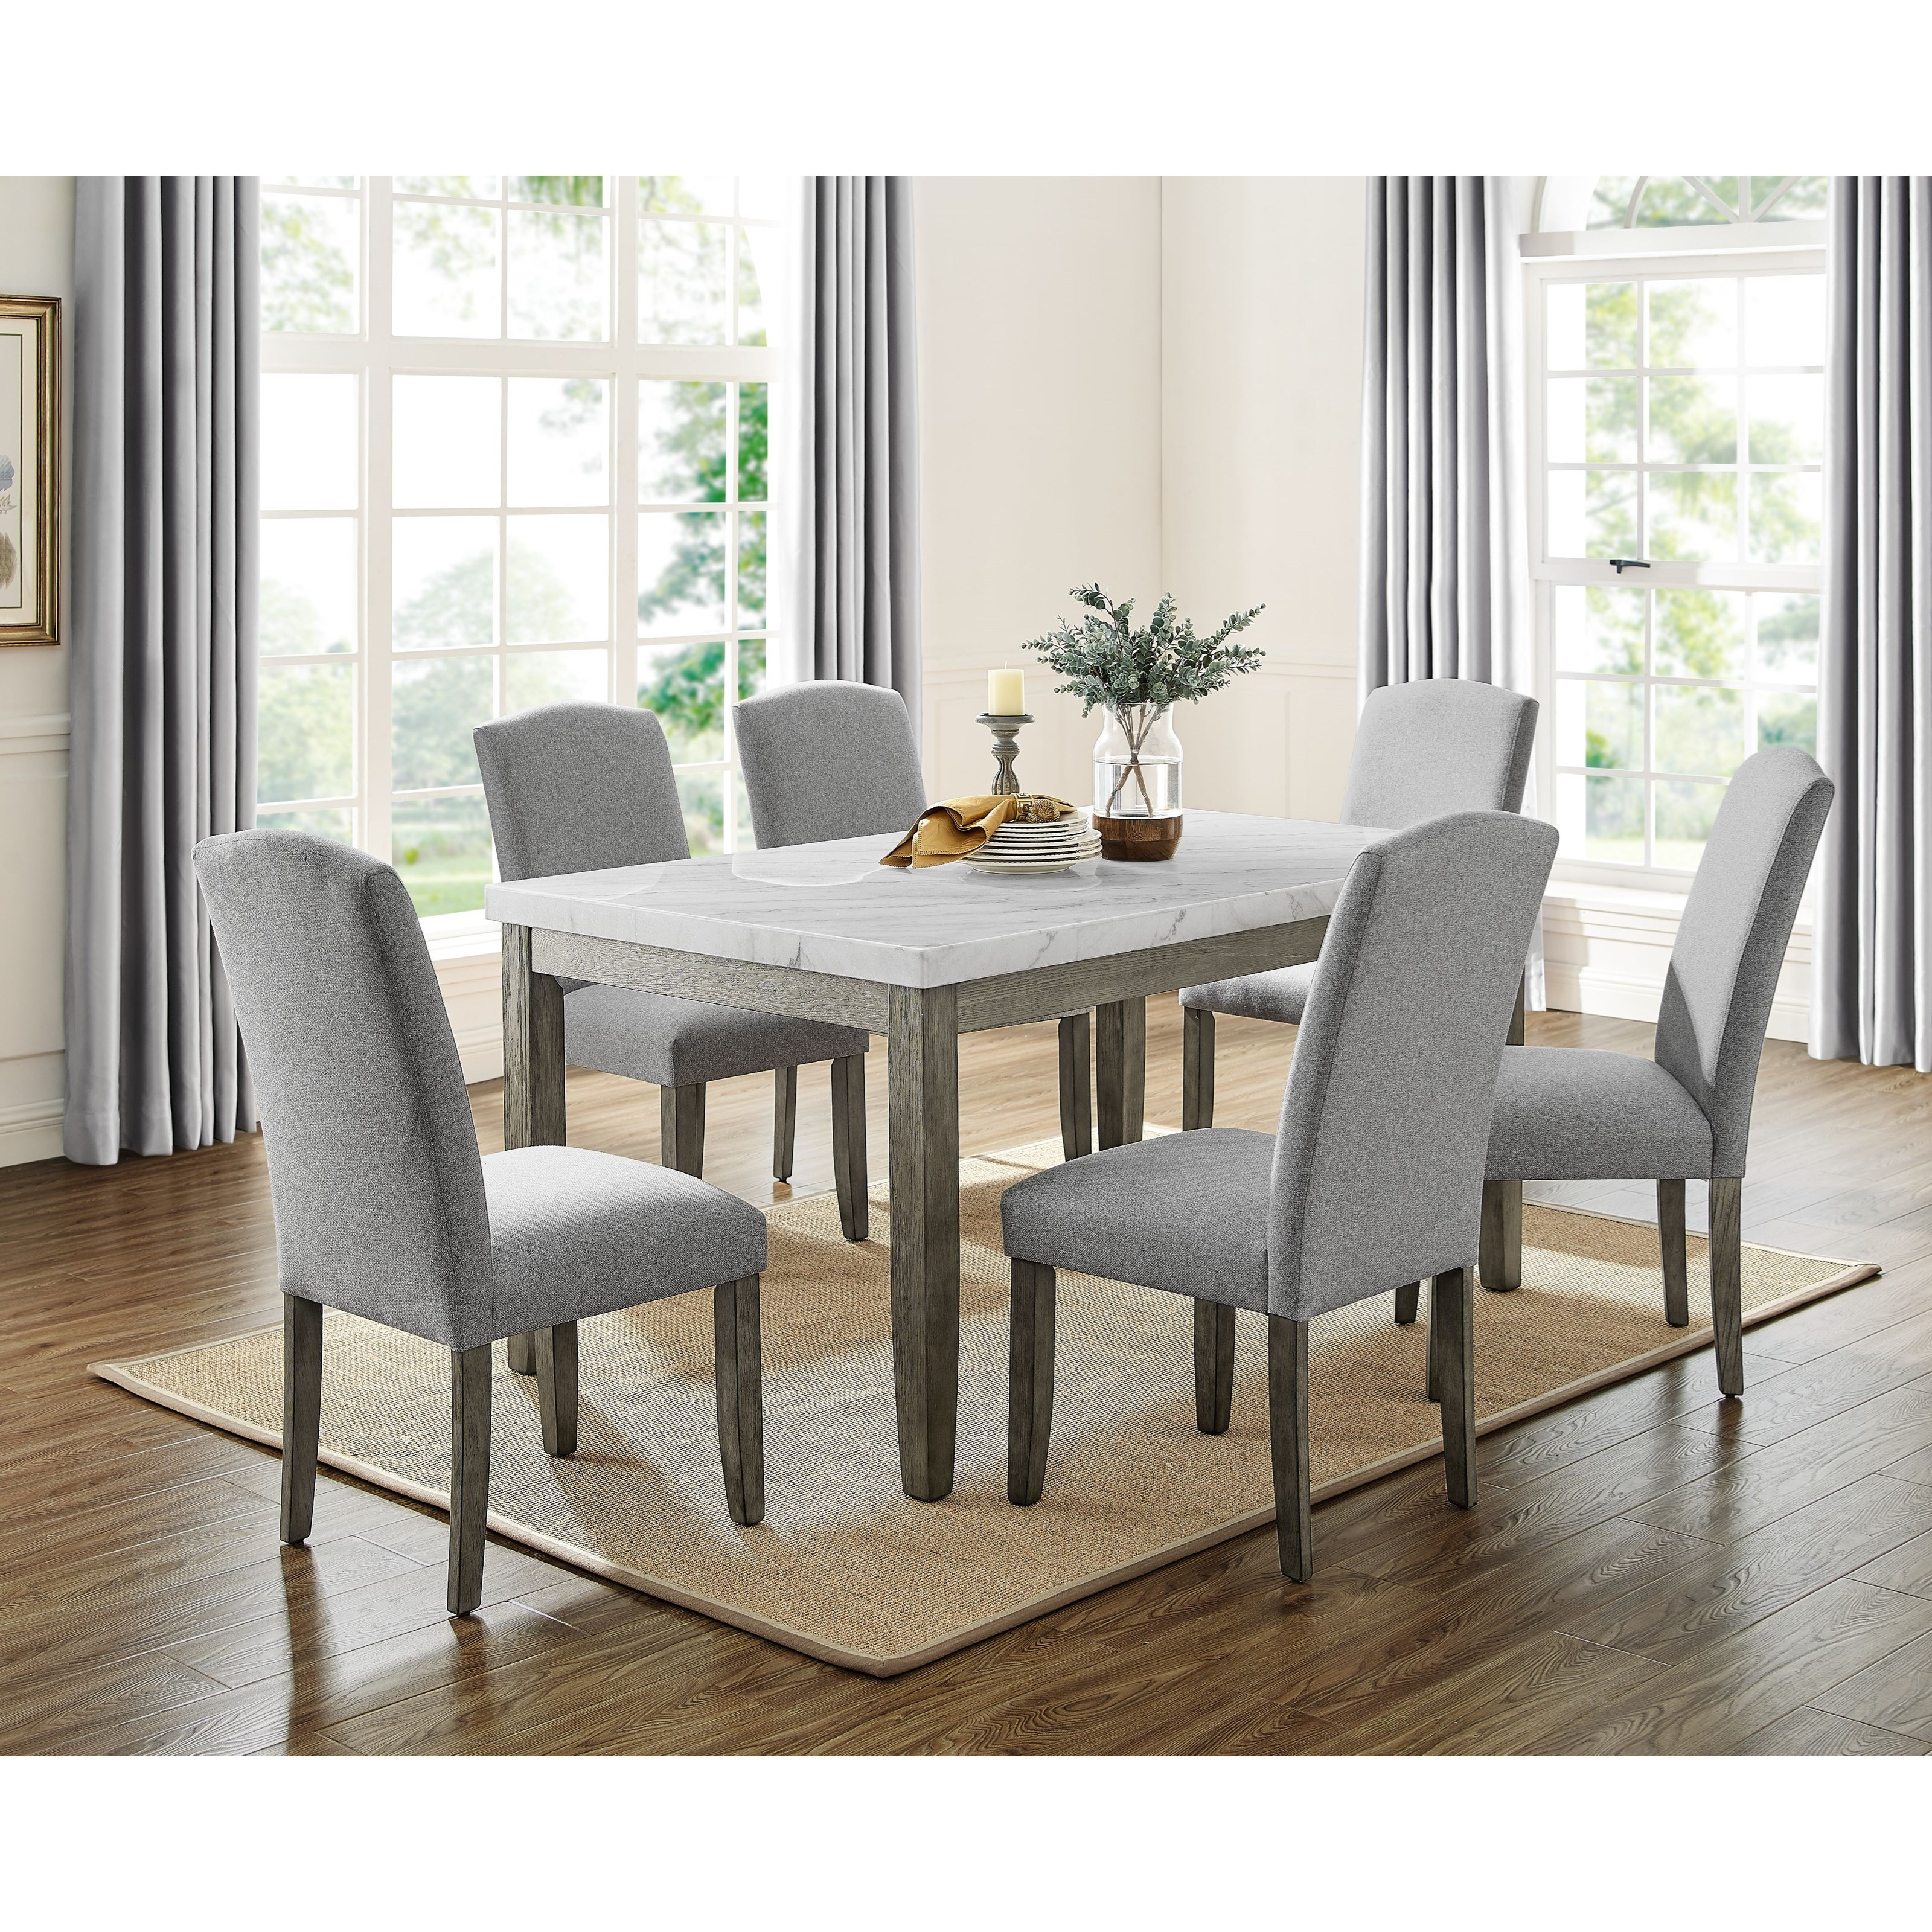 Emily 7-Piece Table and Chair Set by Steve Silver at Northeast Factory Direct